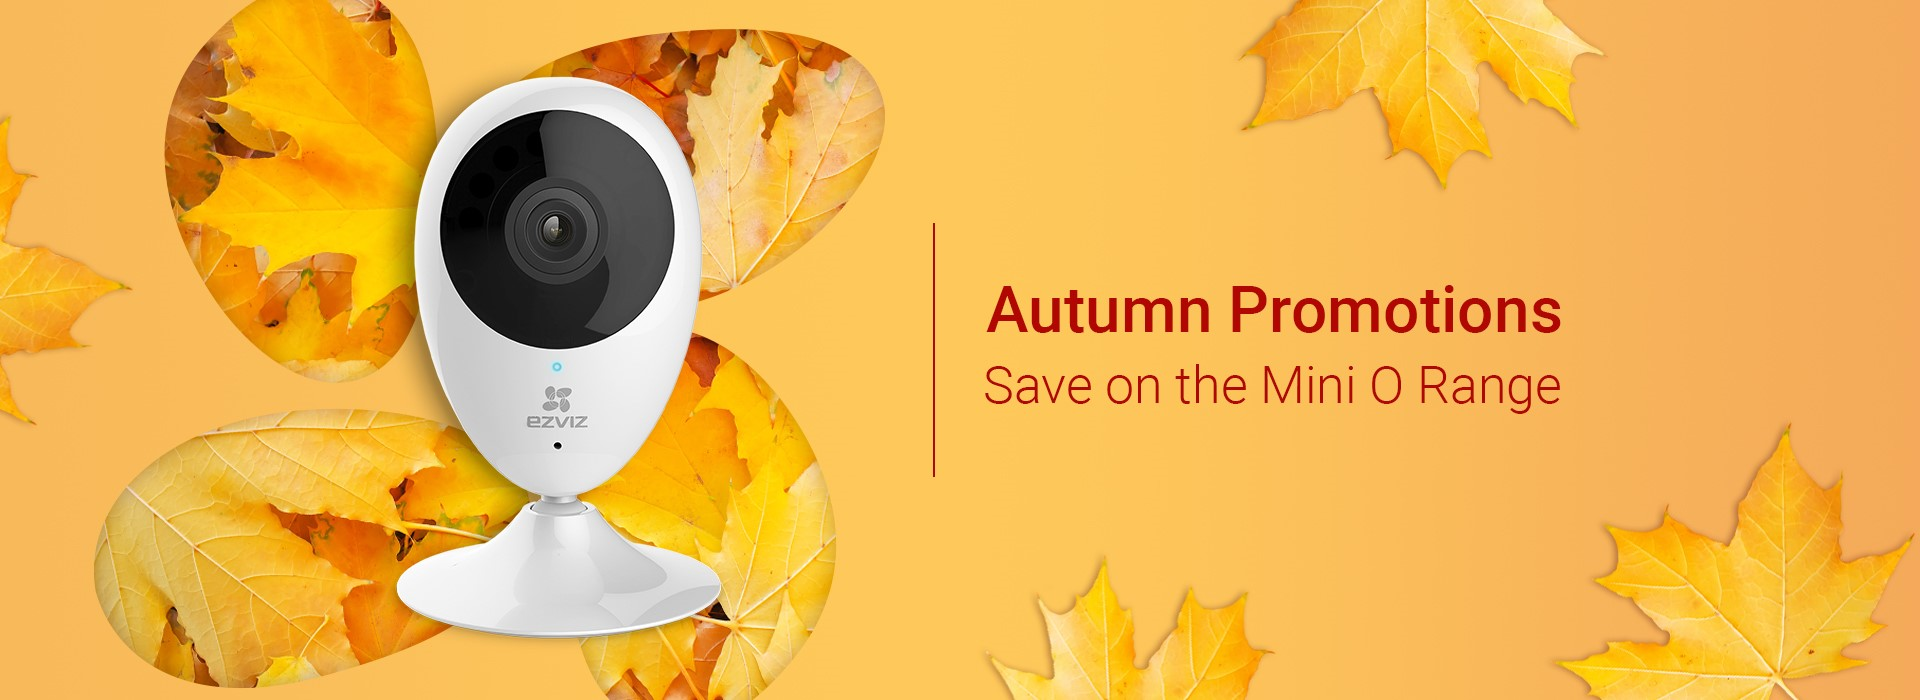 Autumn Promotions